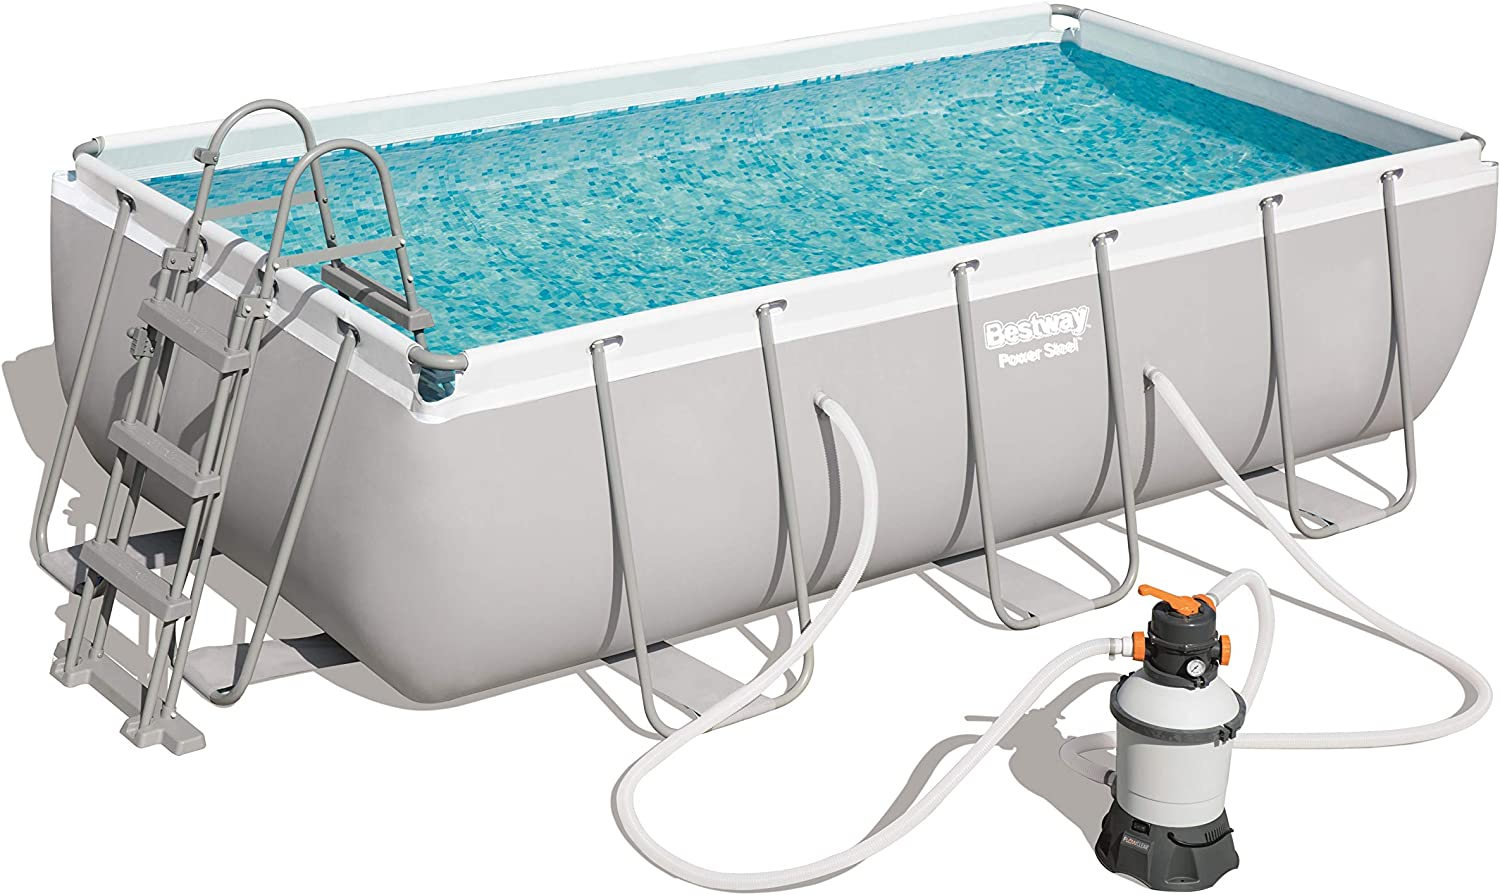 Bestway 56442 Power Steel Rectangular Pool 404 X201 X100 cm, Marco ...